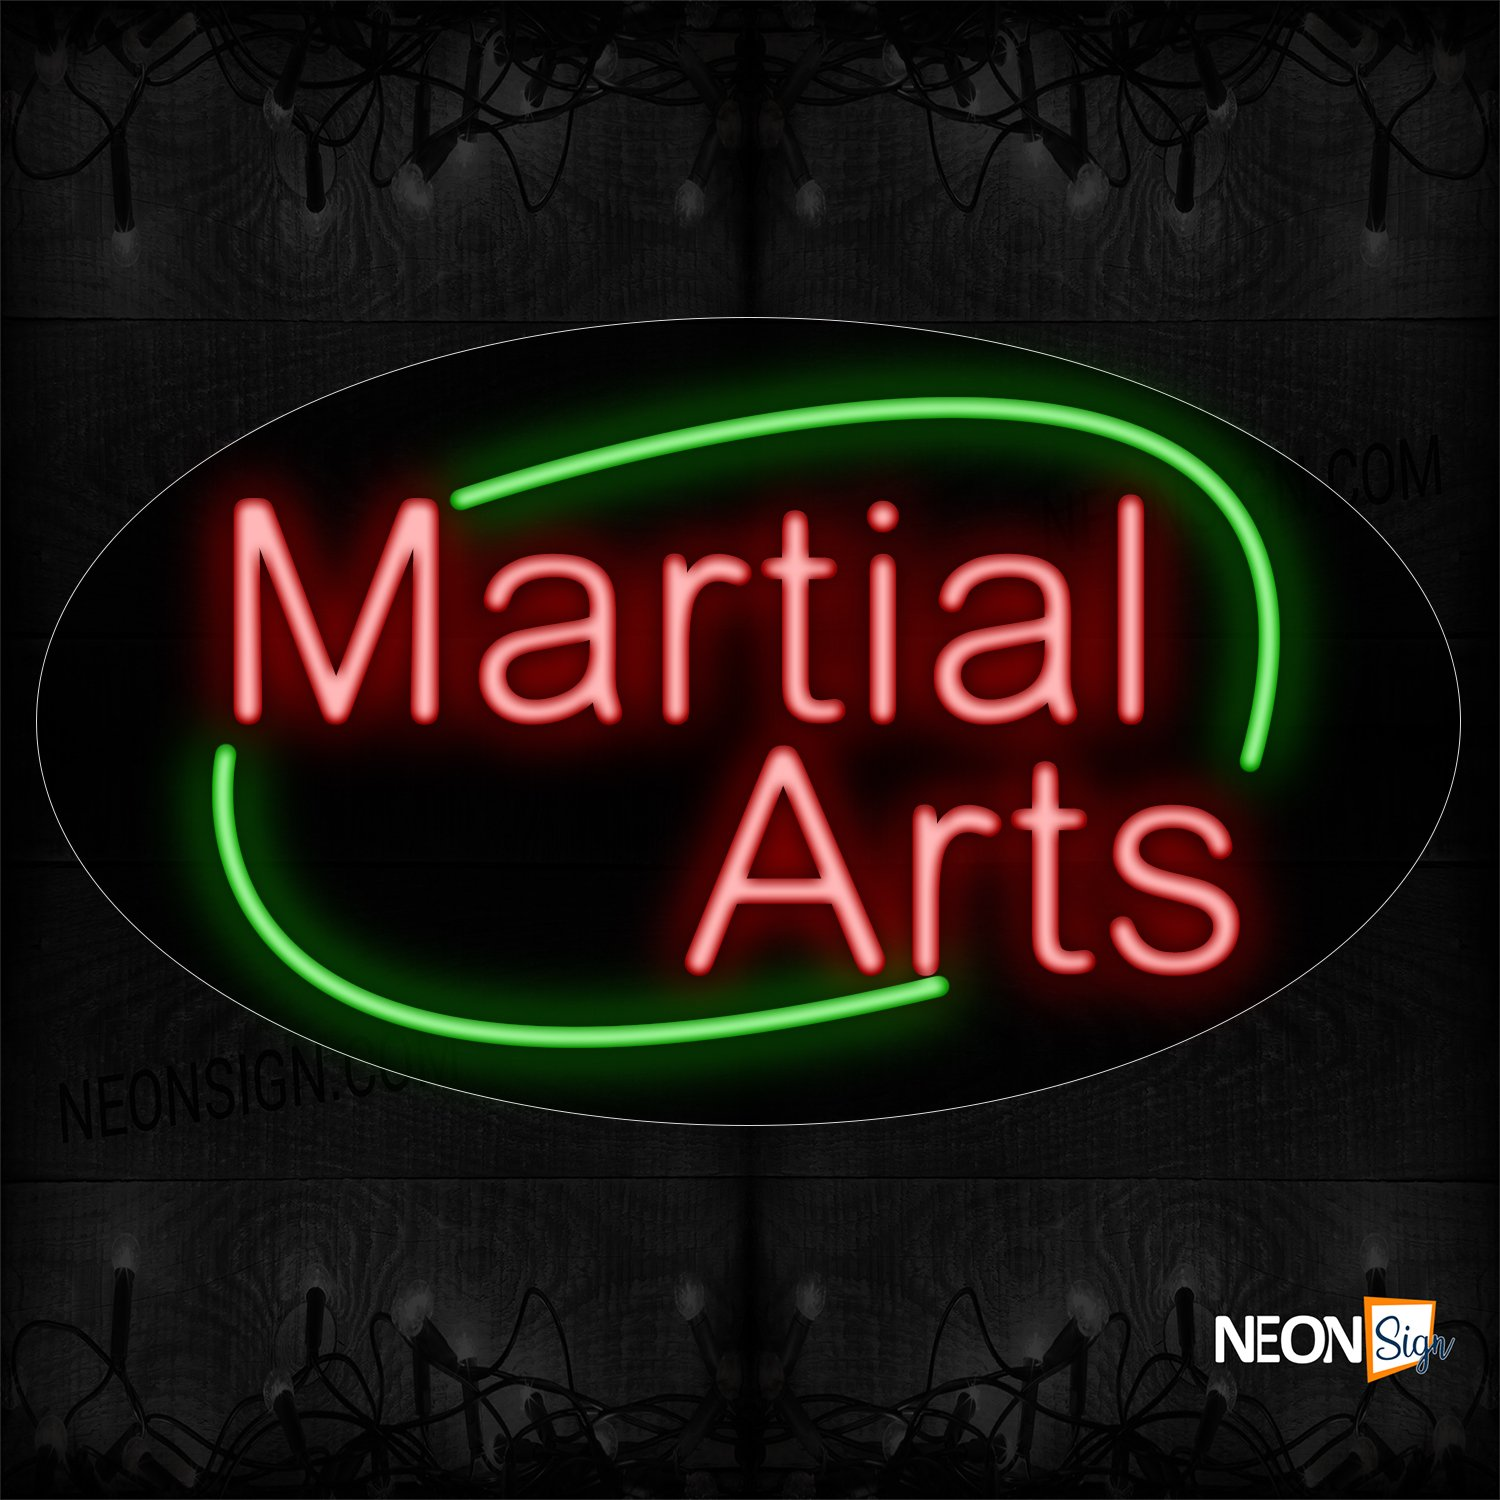 Image of 14596 Martial Arts With Green Arc Border Neon Sign_17x30 Contoured Black Backing